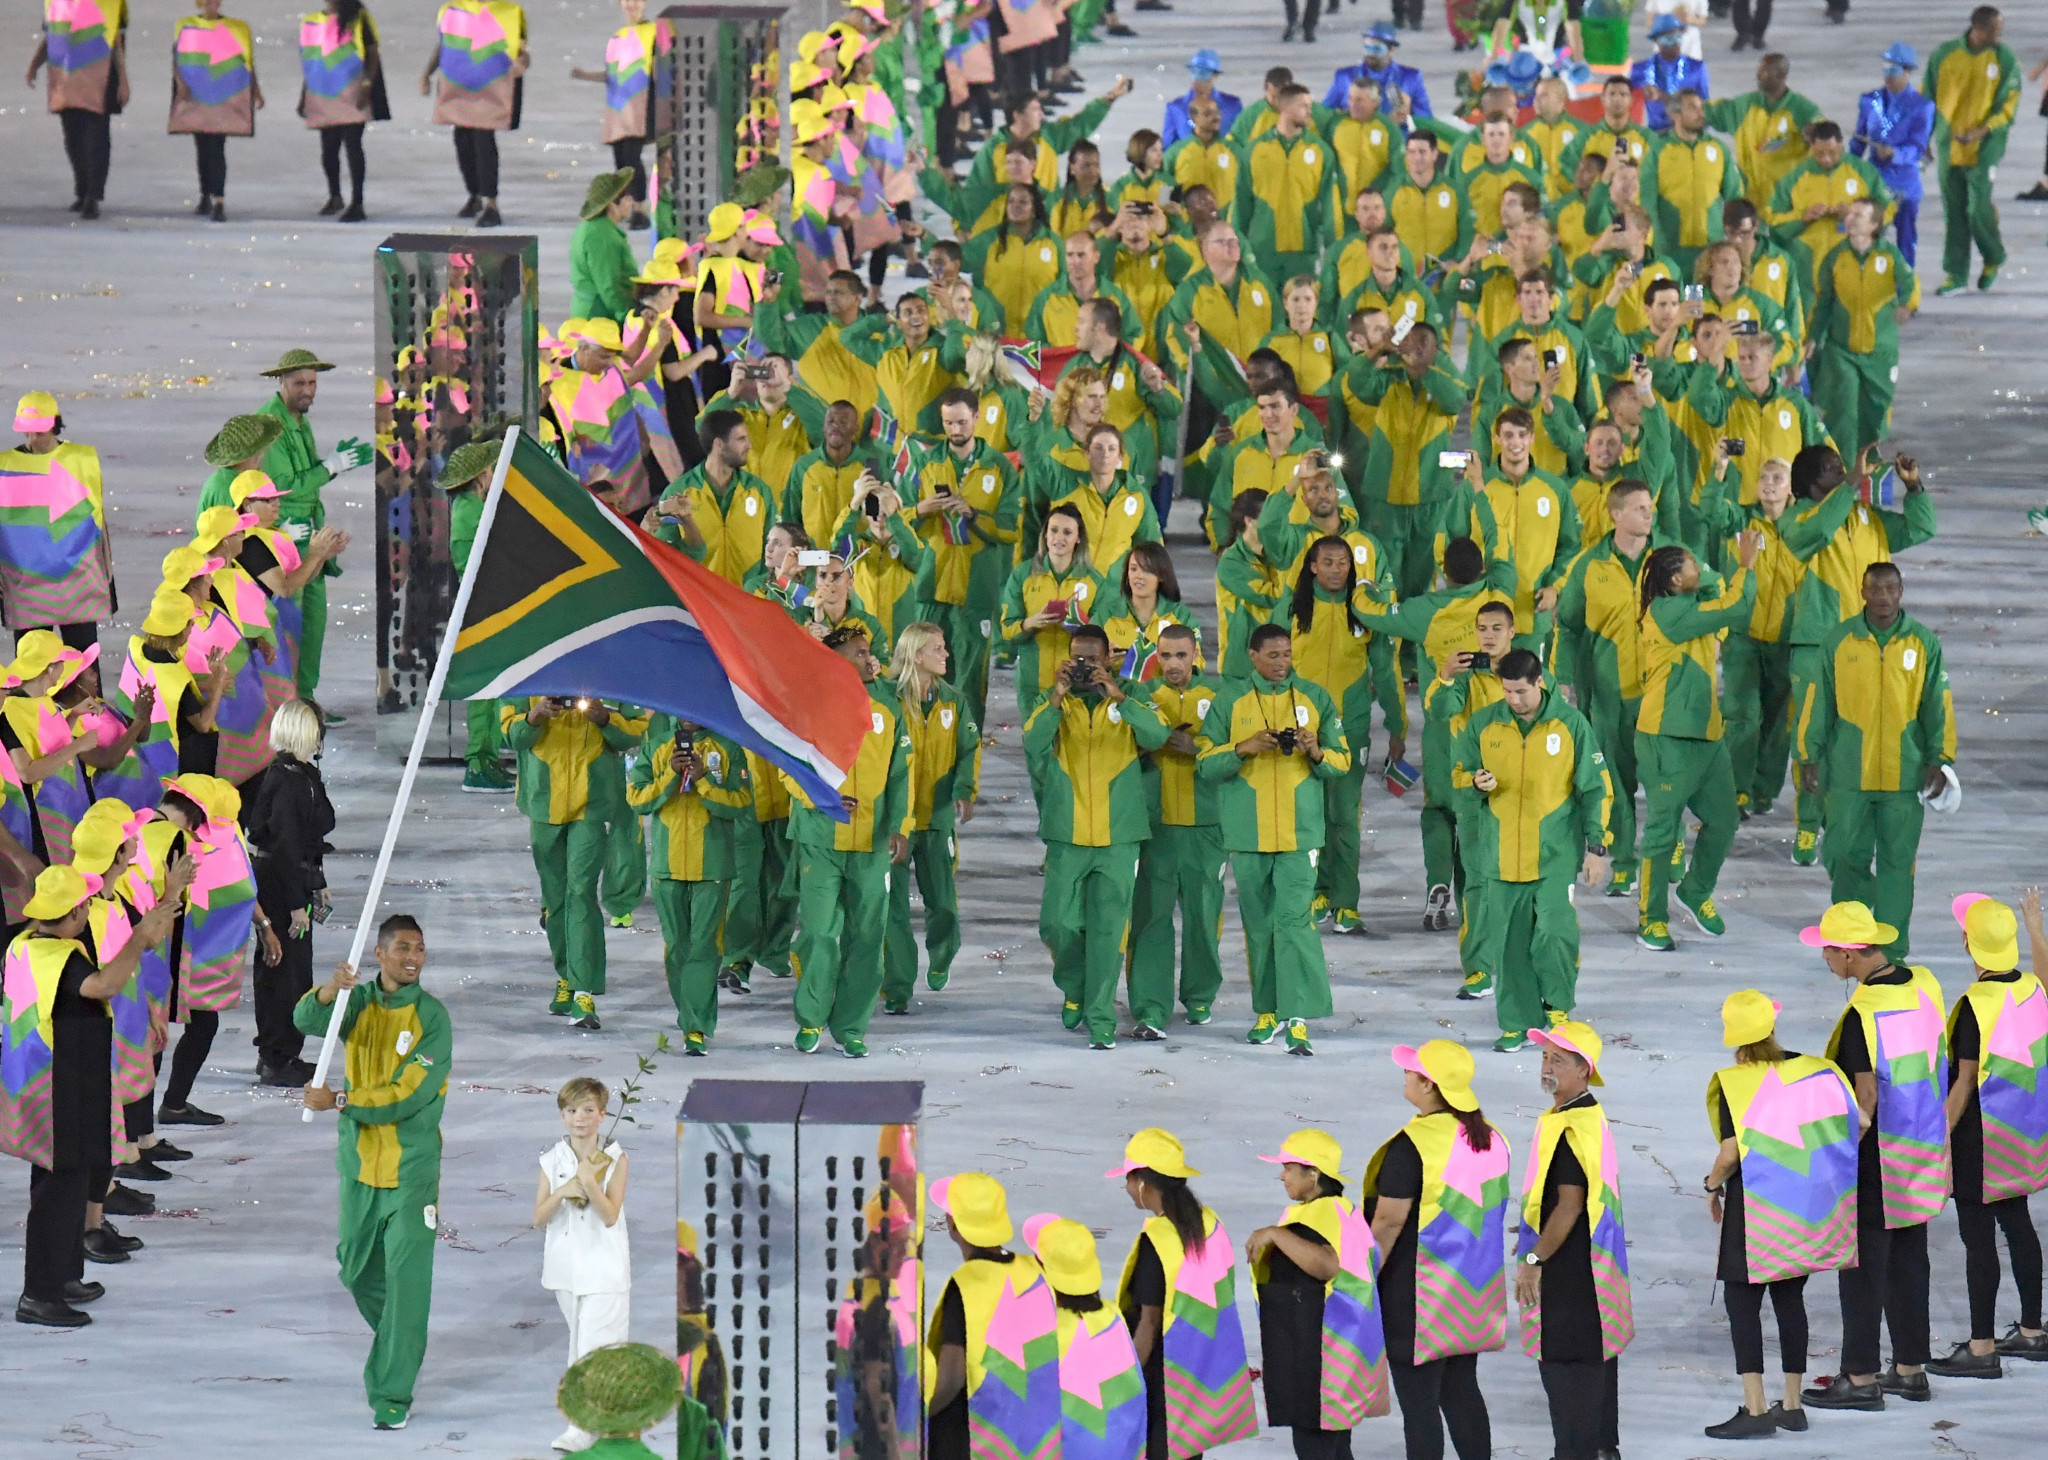 SASCOC struggle to sign Tokyo 2020 selection criteria deals with sports federations